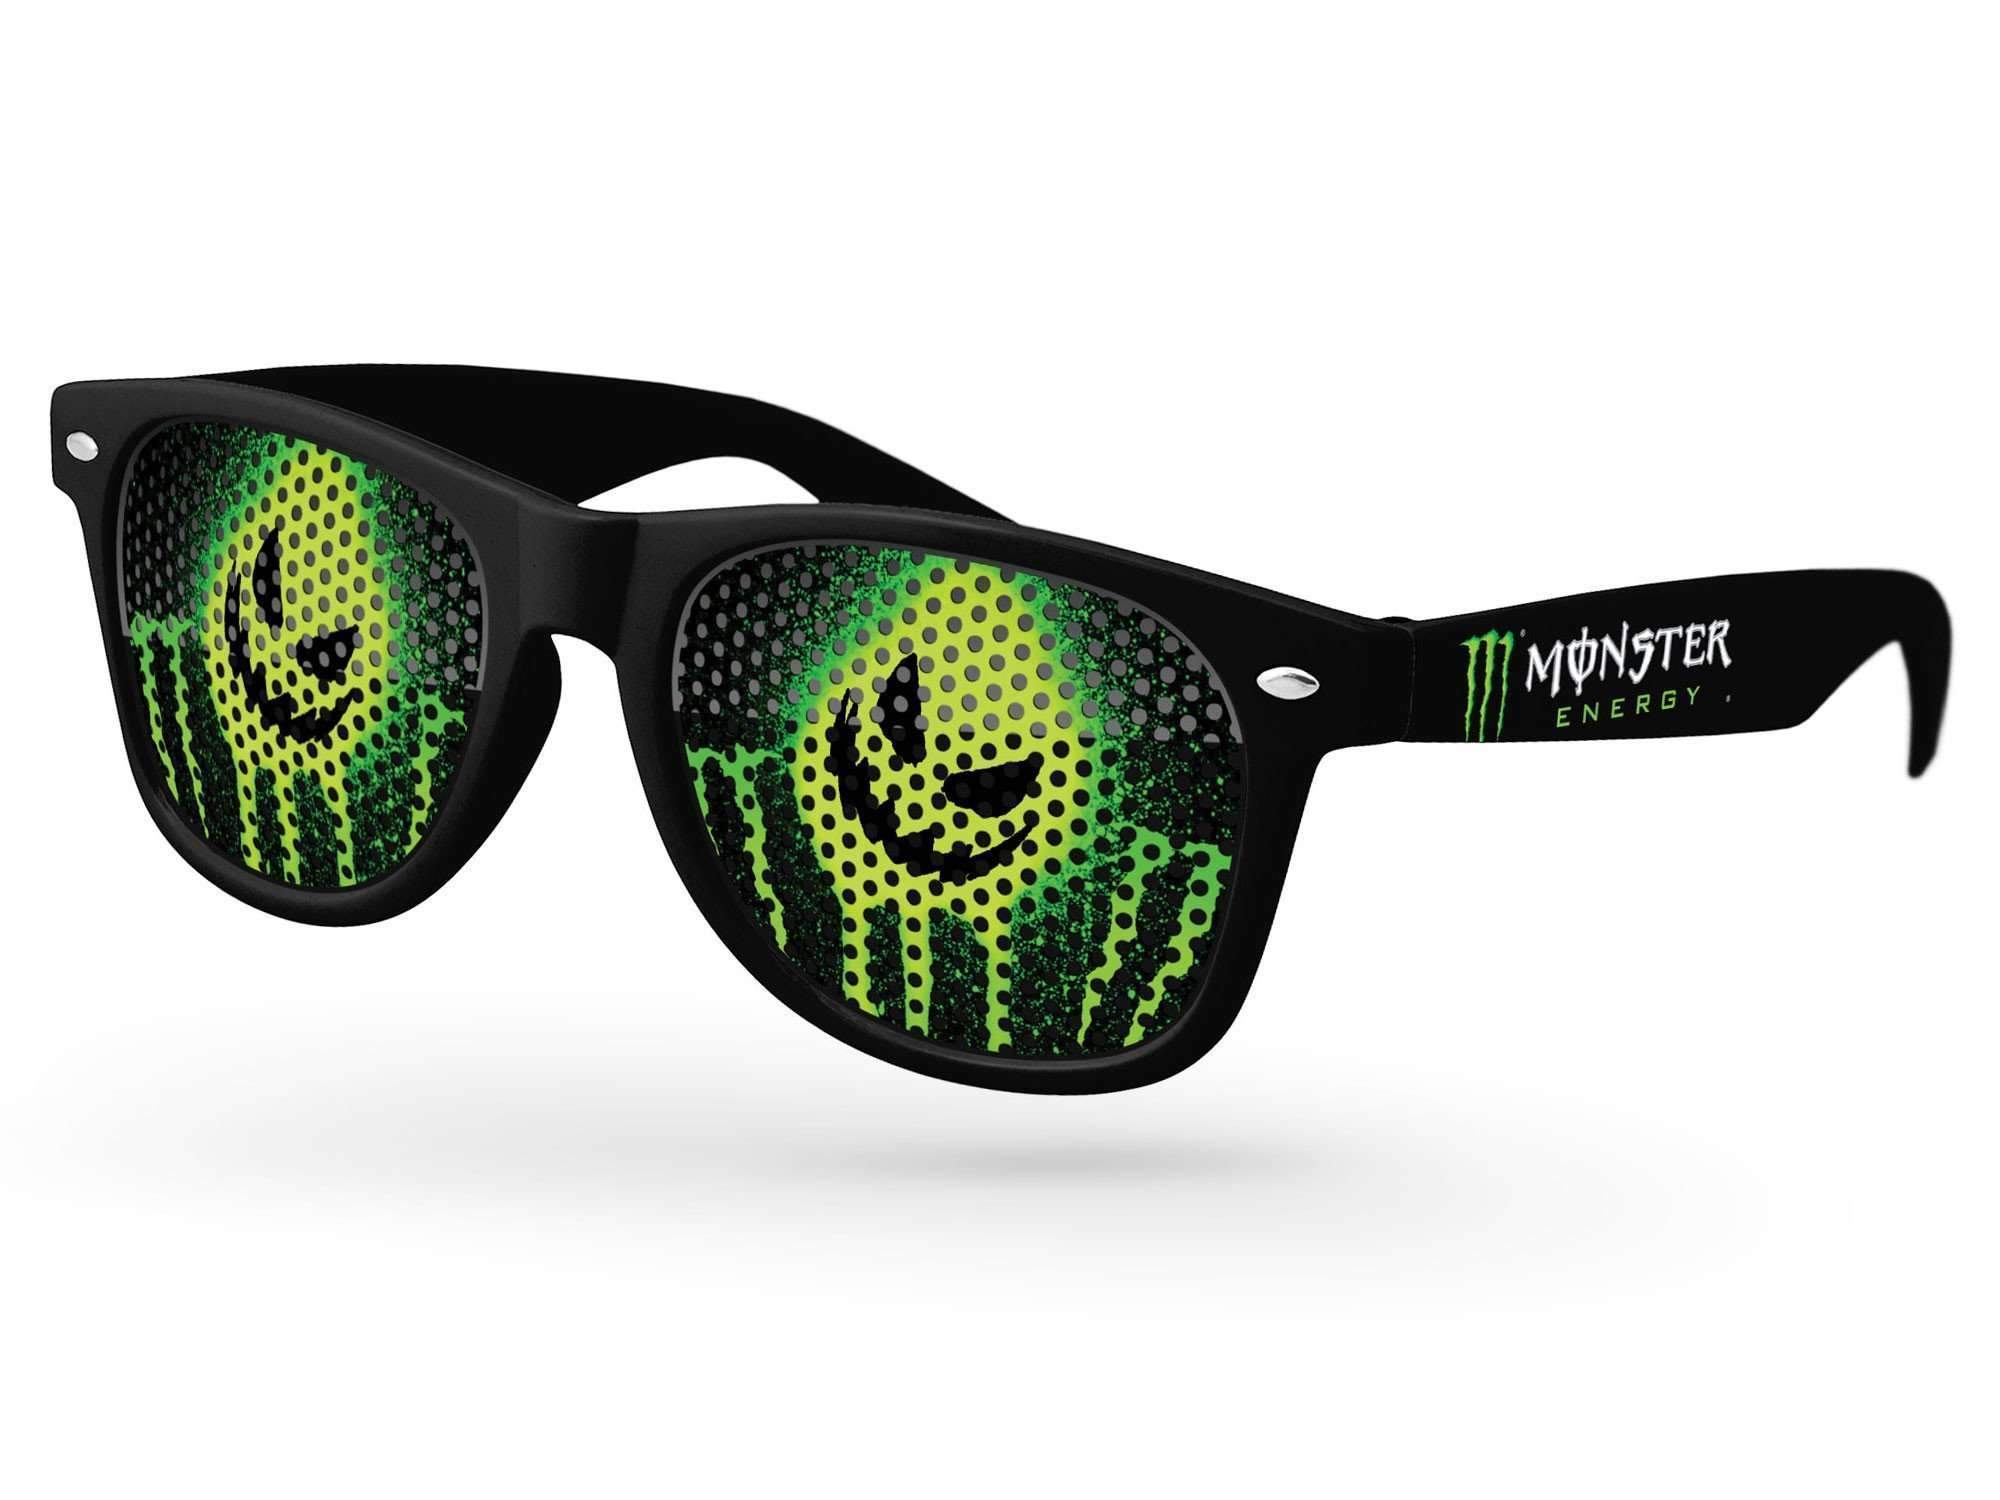 Retro Pinhole Promotional Sunglasses w/ full-color temple imprint